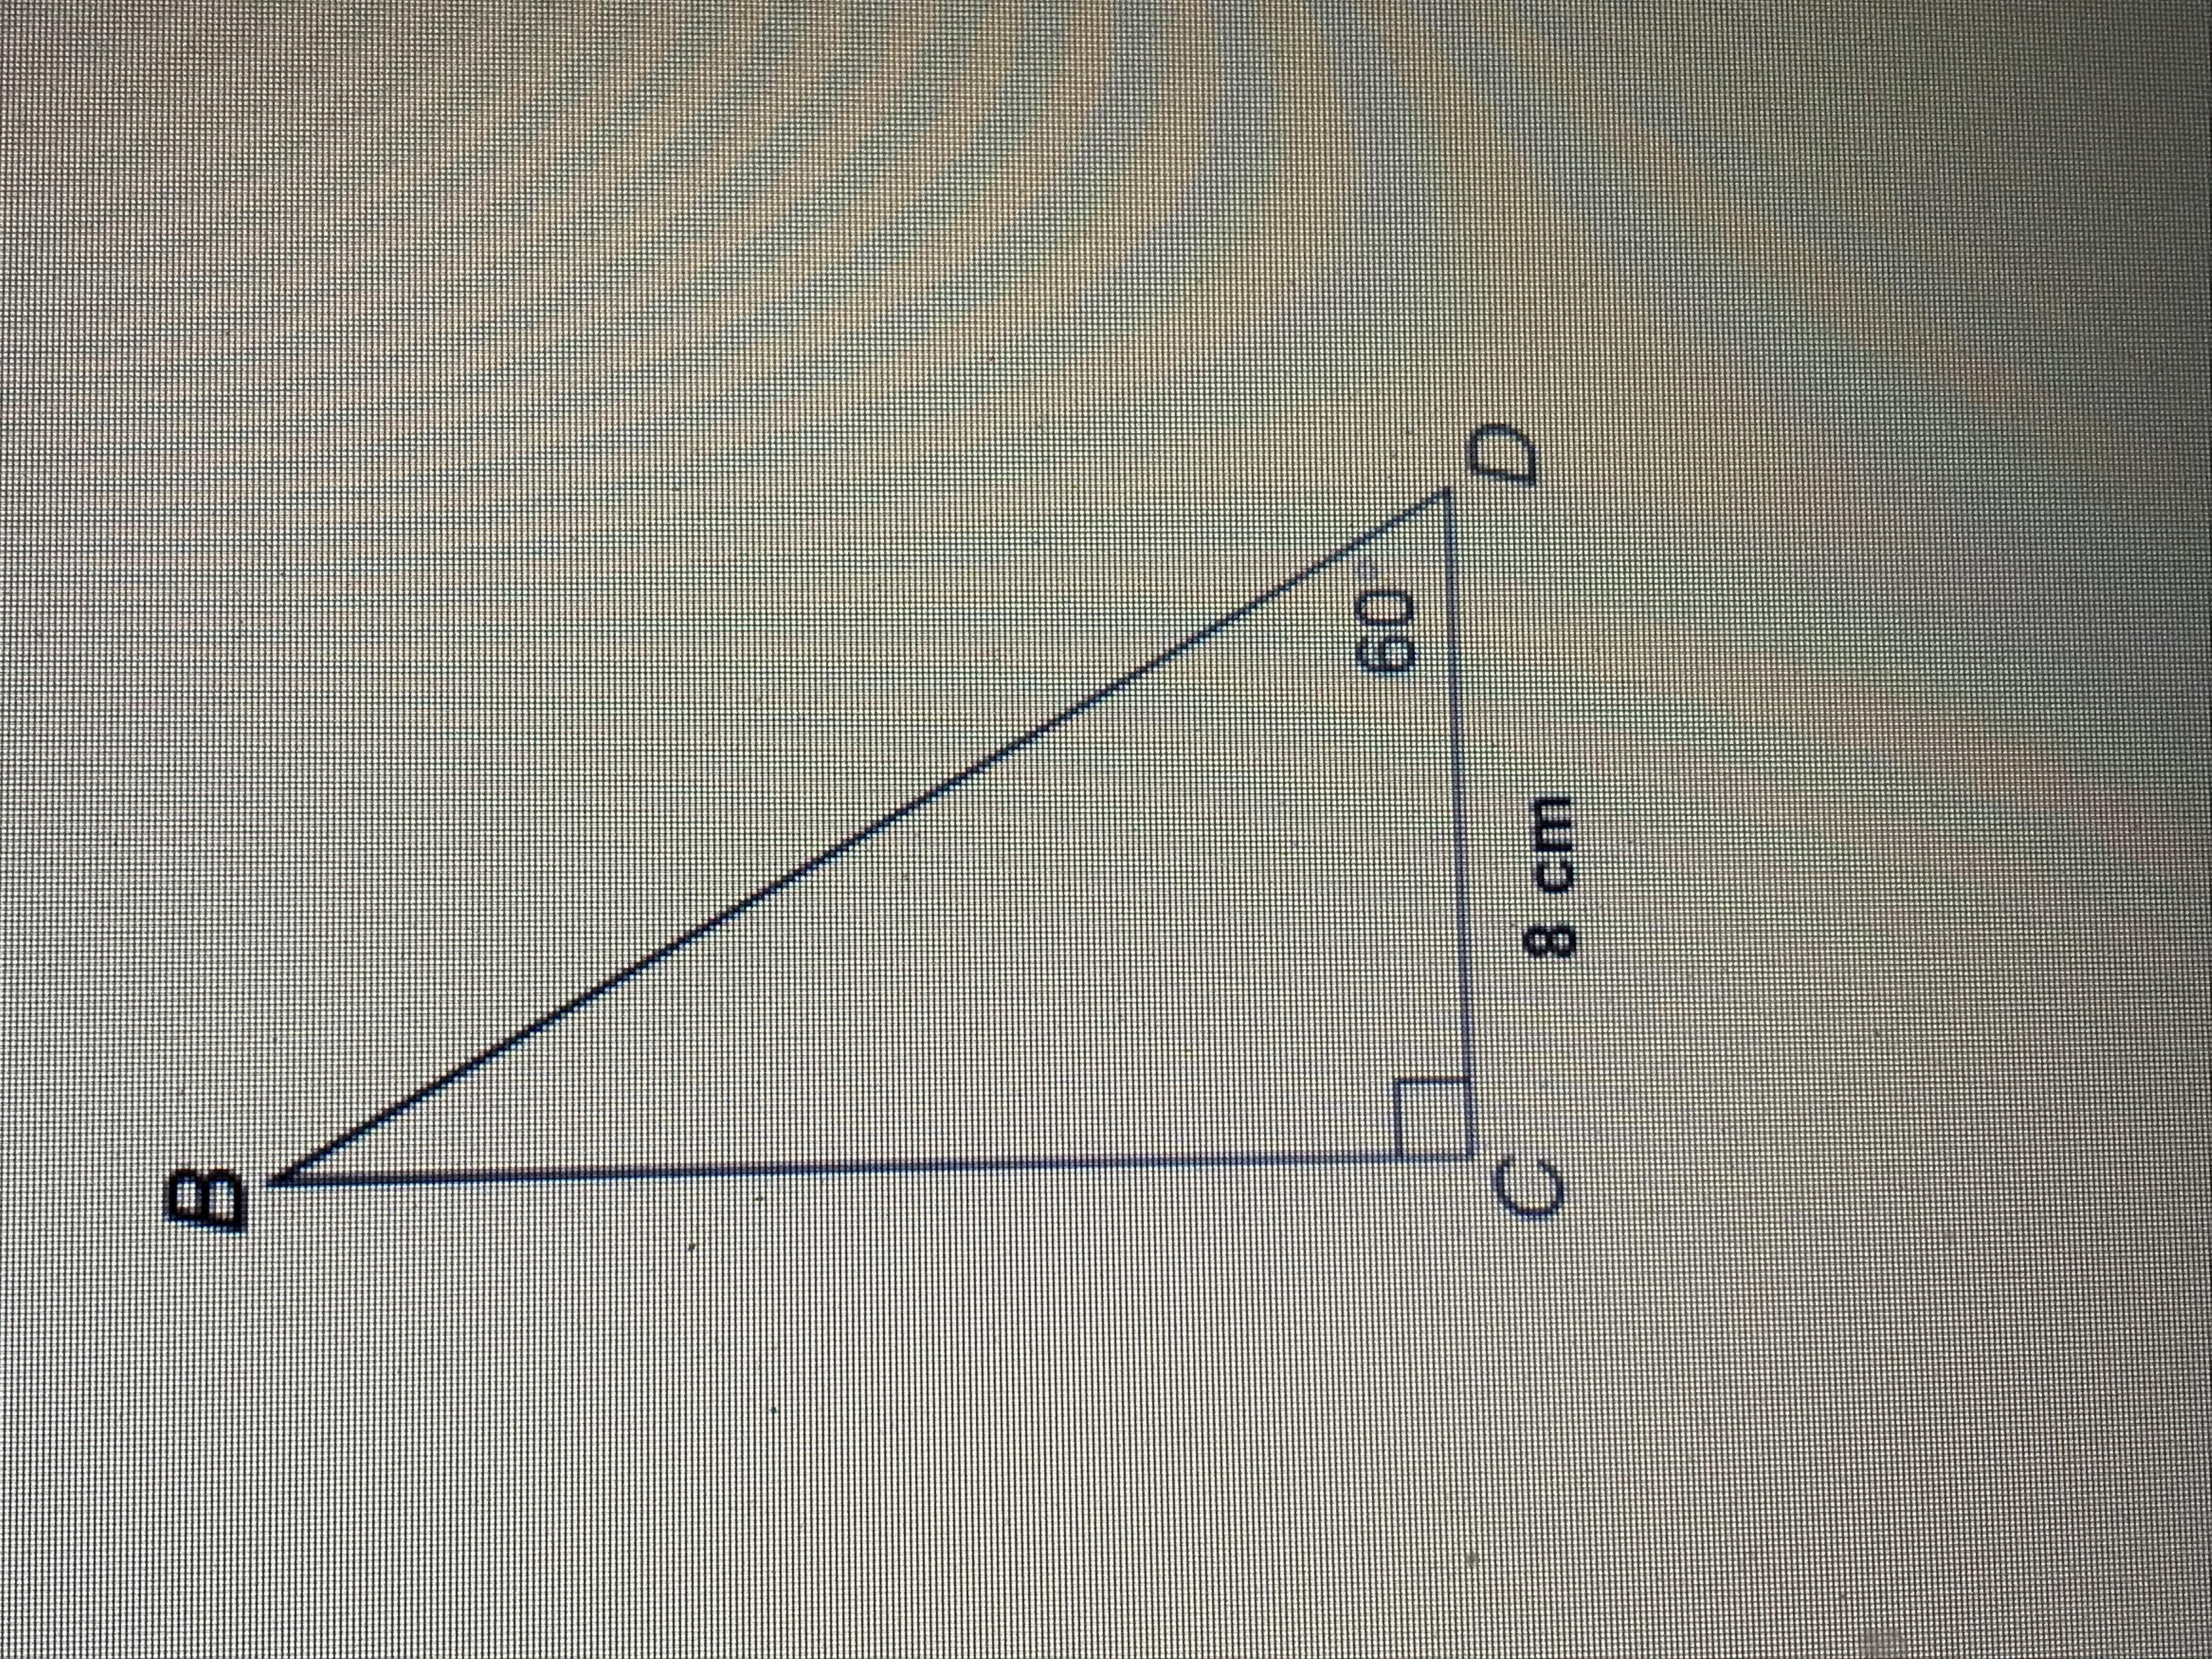 What Is The Area Of Triangle Bcd To The Nearest Tenth Of A